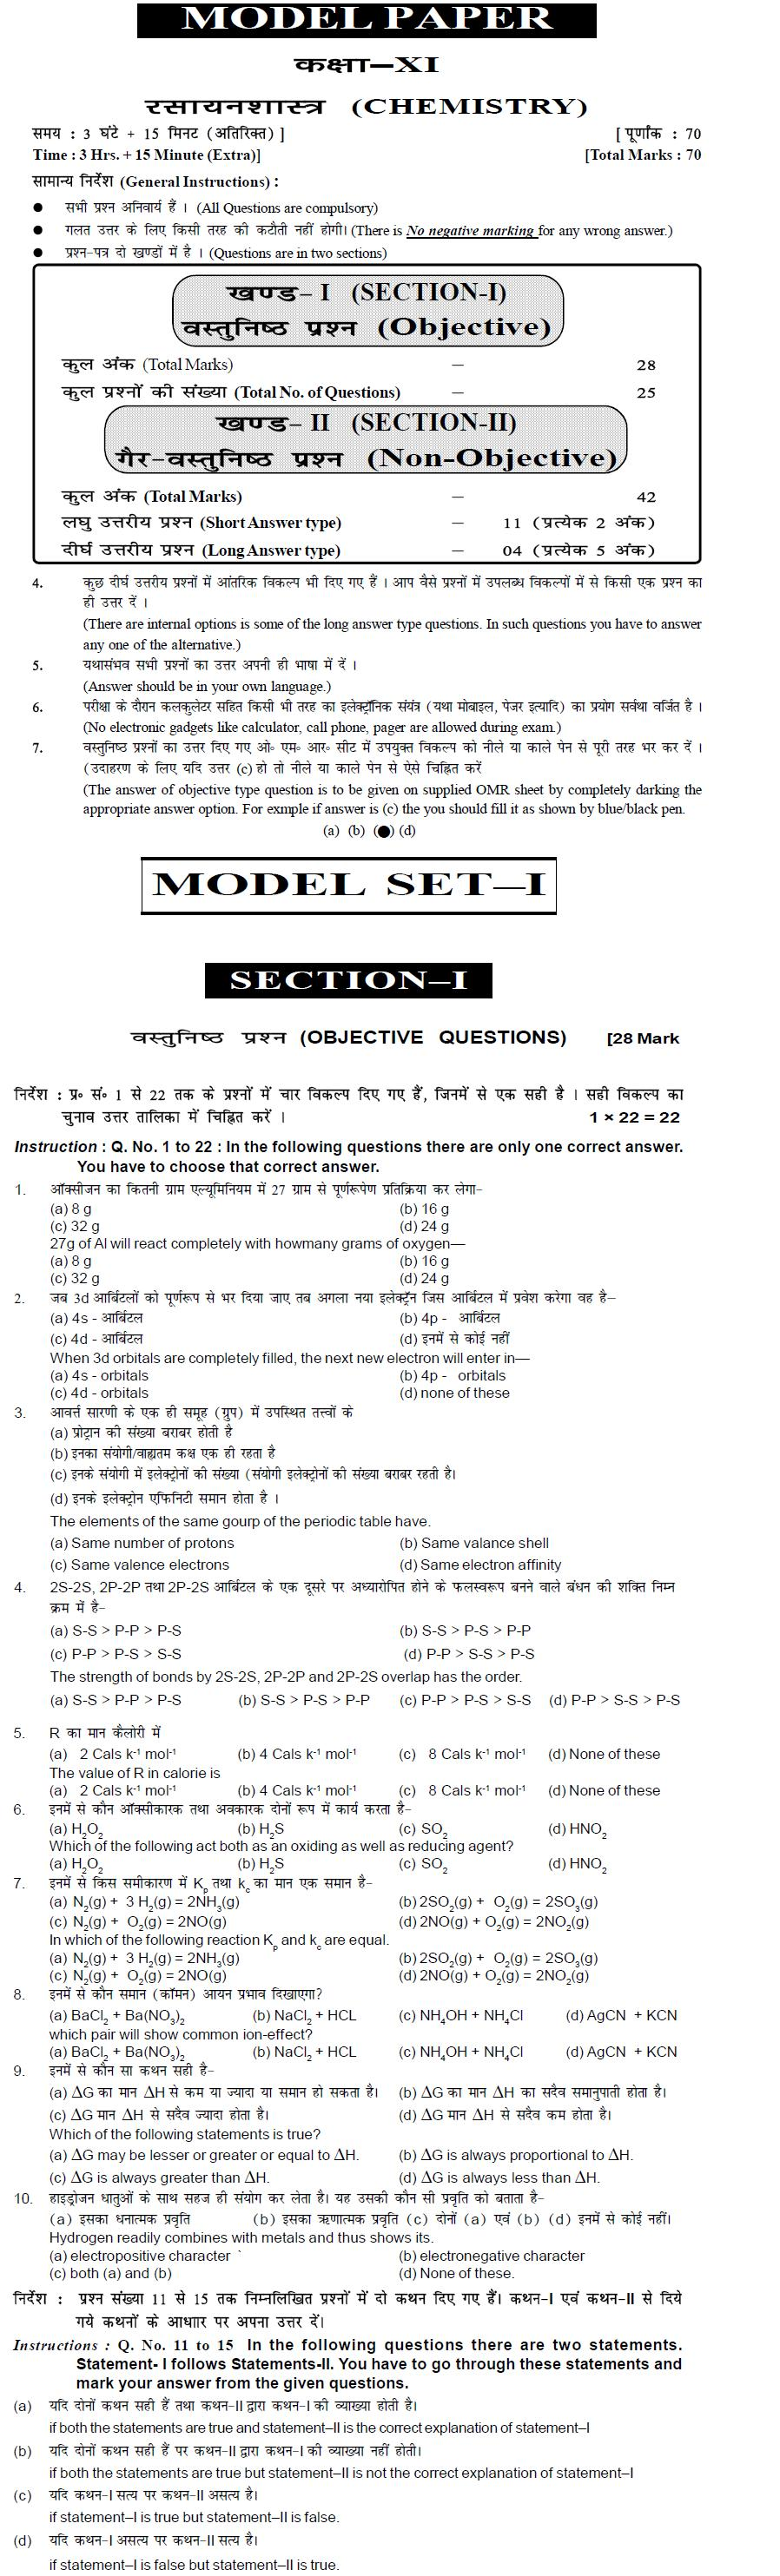 Bihar Board Class XI Science Model Question Papers - Chemistry